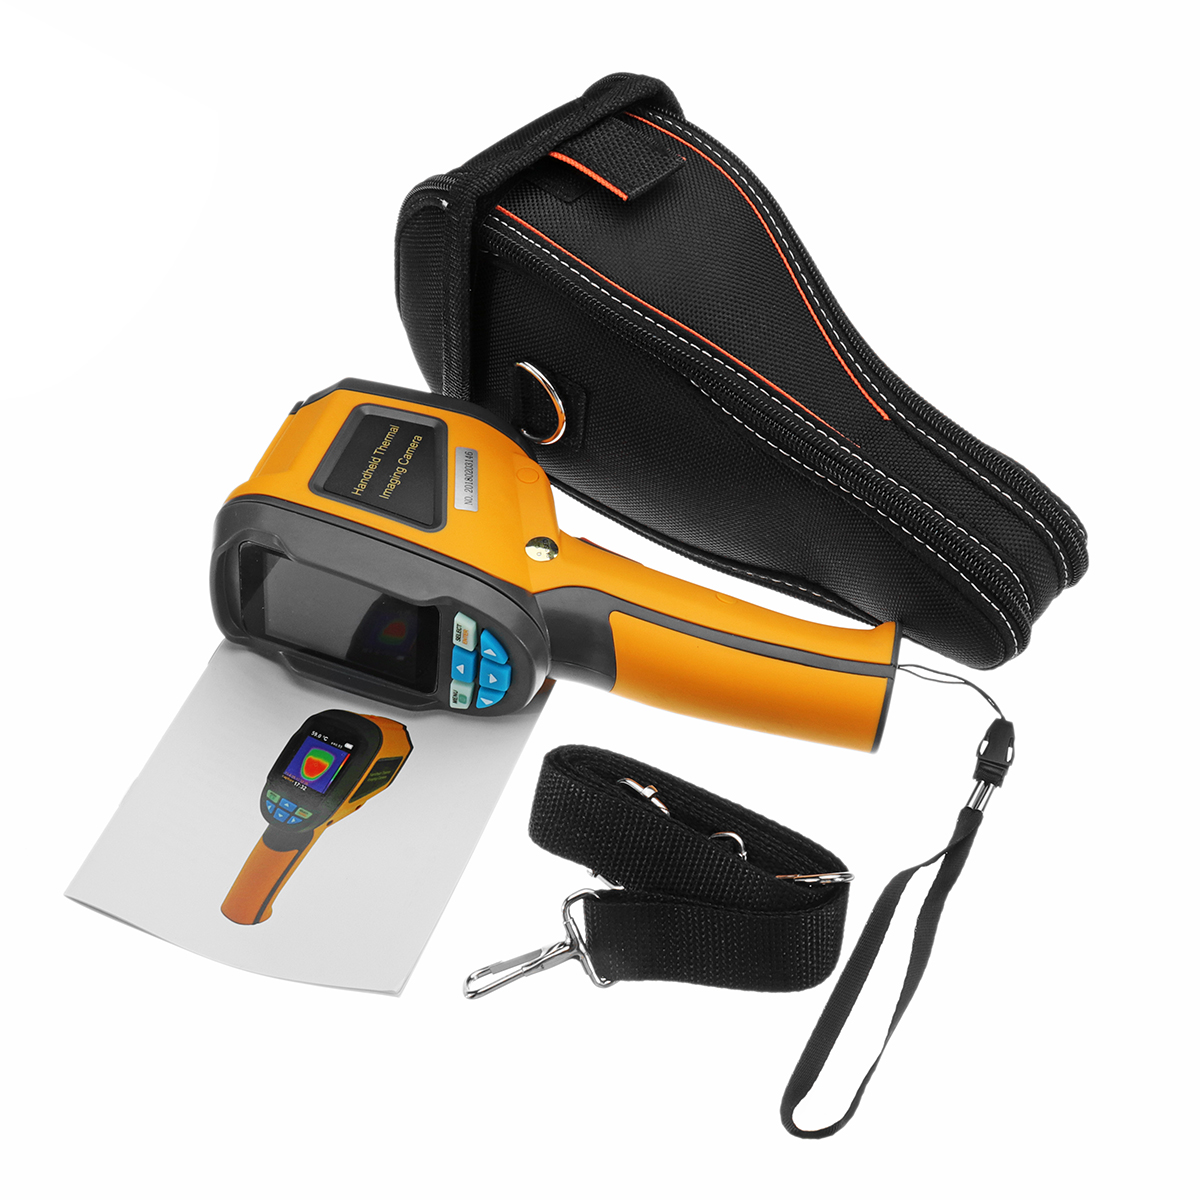 ZEAST HT-02 Handheld Thermal Imaging Camera Handheld Thermograph Camera Infrared Thermal Camera HT02 LCD Digital Infrared Imager reiner salzer infrared and raman spectroscopic imaging